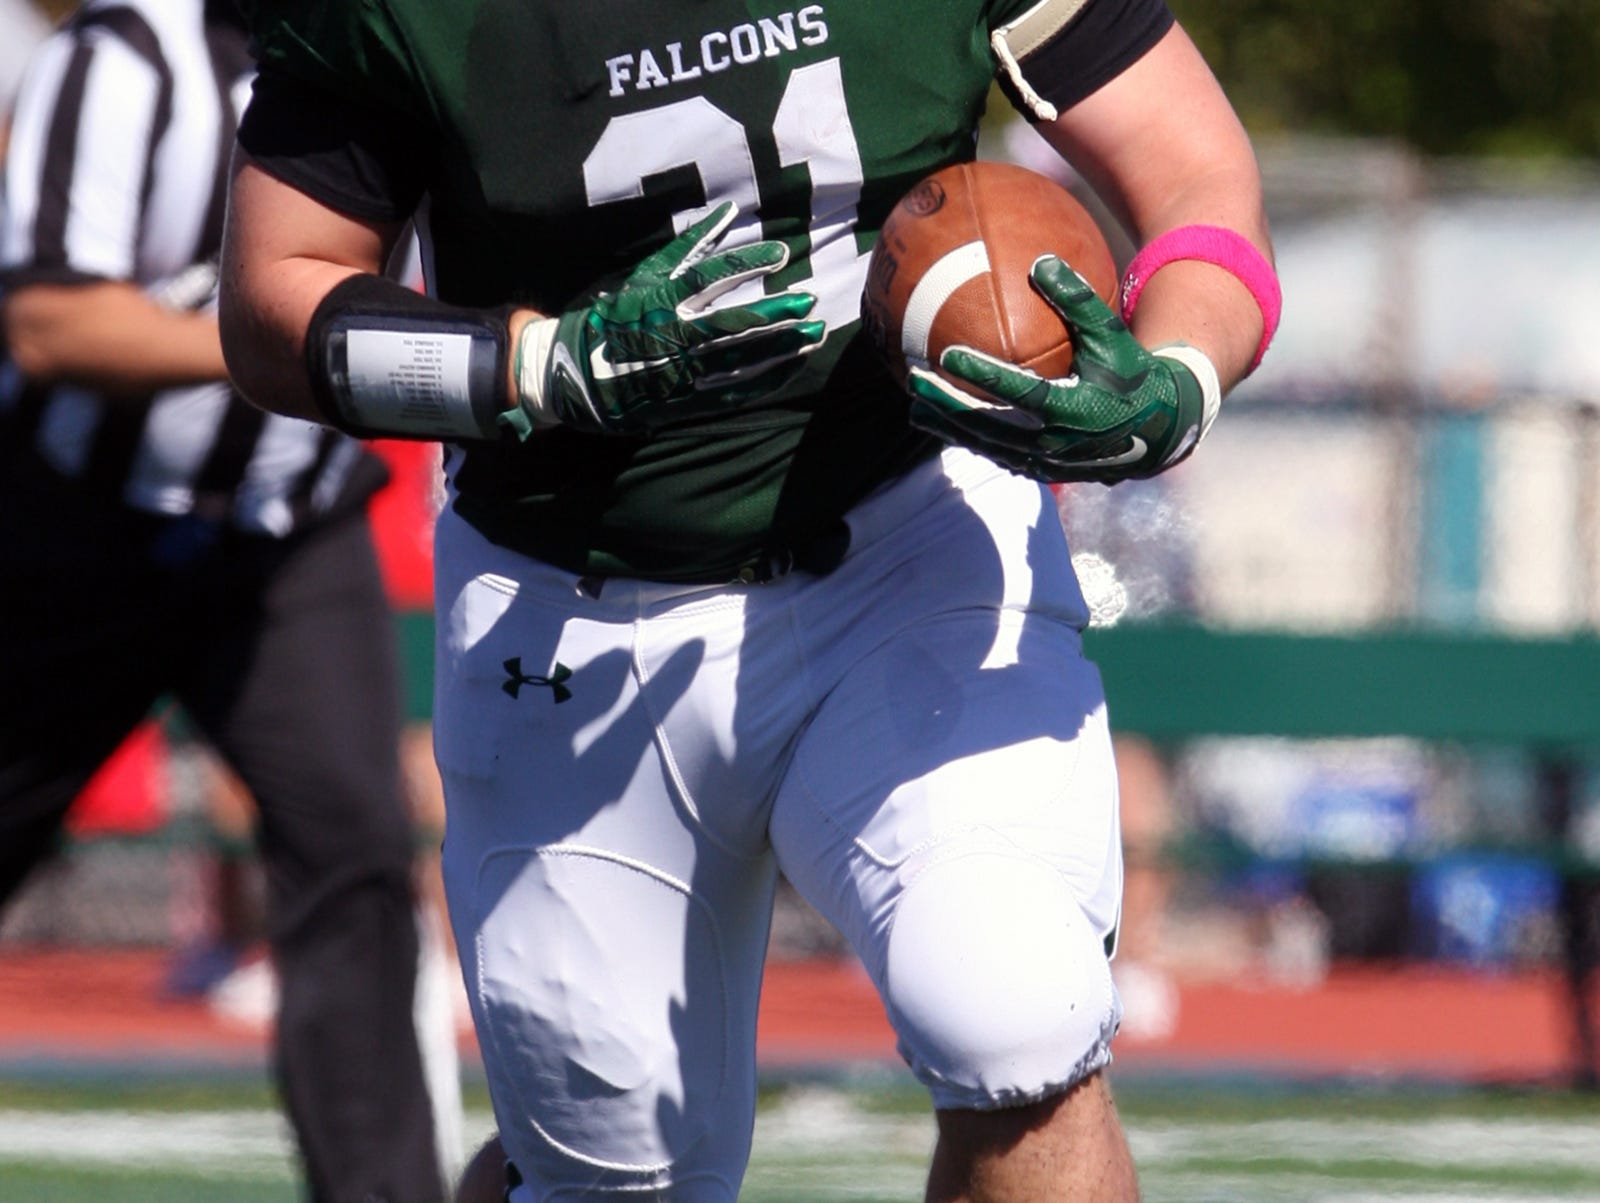 Action photos from the Perth Amboy High School at St. Joseph football game held at St. Joseph's new turf field in Metuhen on Saturday October 10, 2015. Here St. Joseph's # 31 Luke Yakley looks for running room during the 1st half of play.